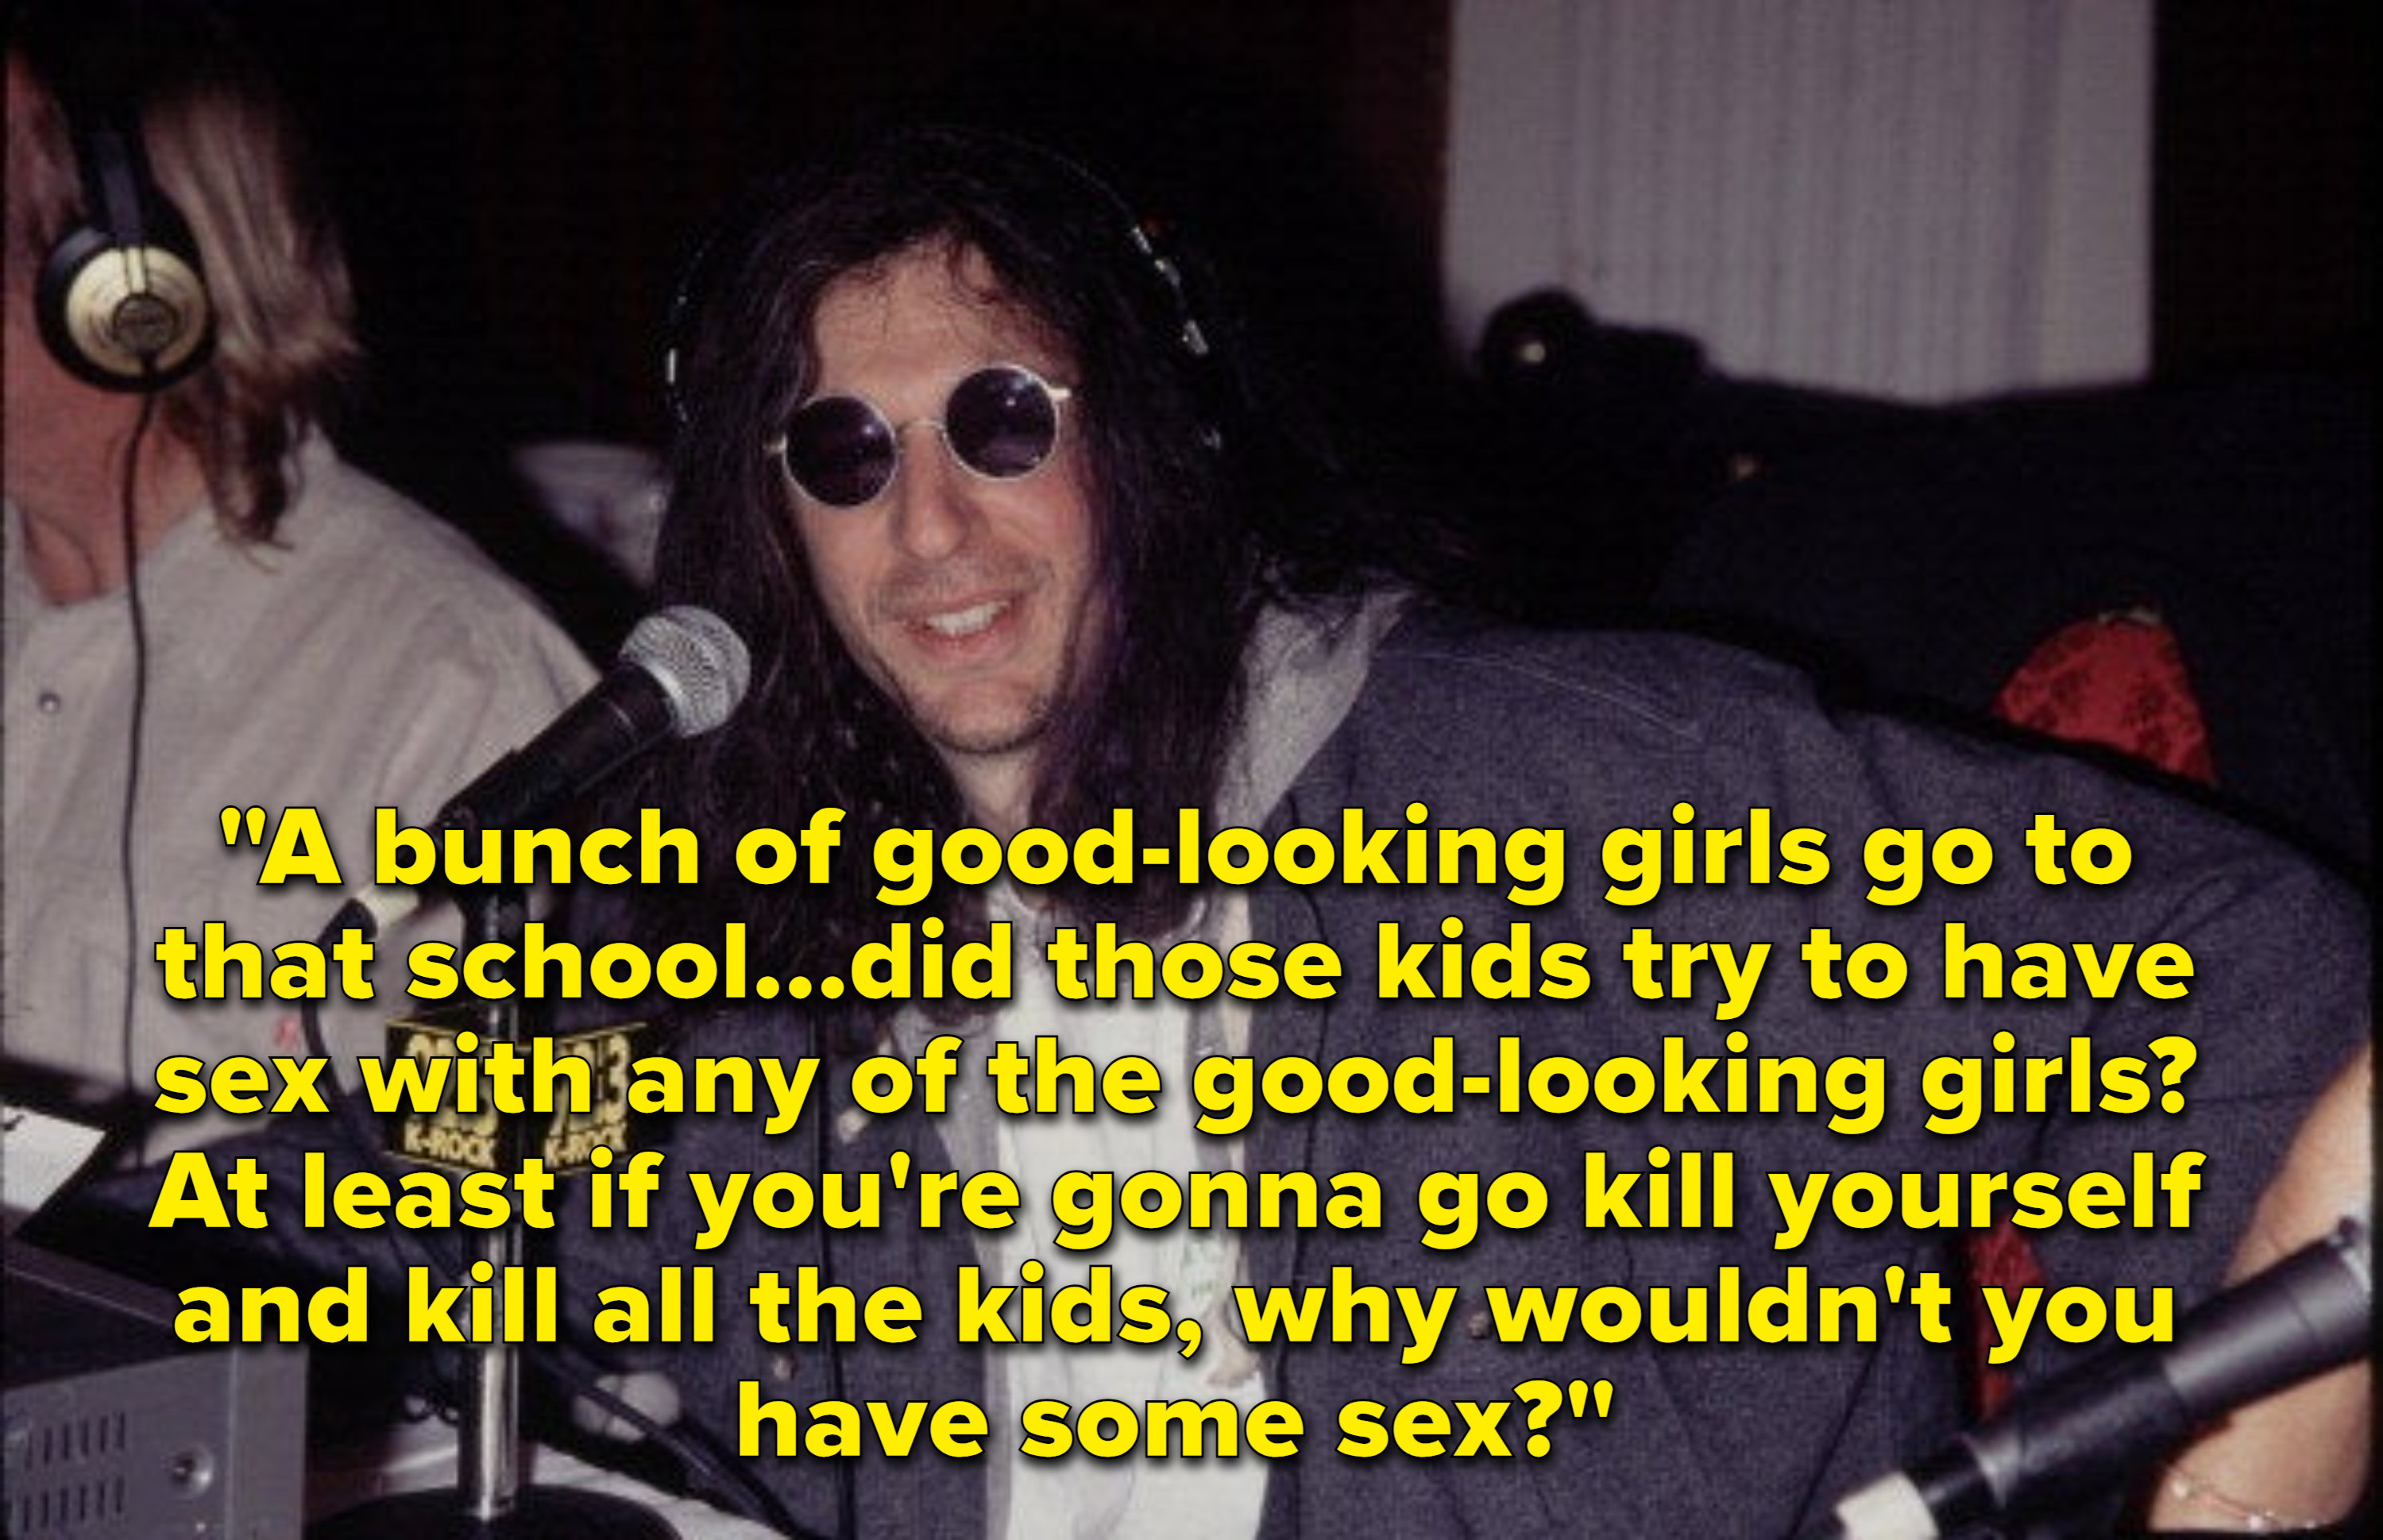 Howard's comment: A bunch of good looking girls go to that school. ... did those kids try to have sex with any of the good looking girls? At least if you're gonna go kill yourself and kill all the kids, why wouldn't you have some sex?